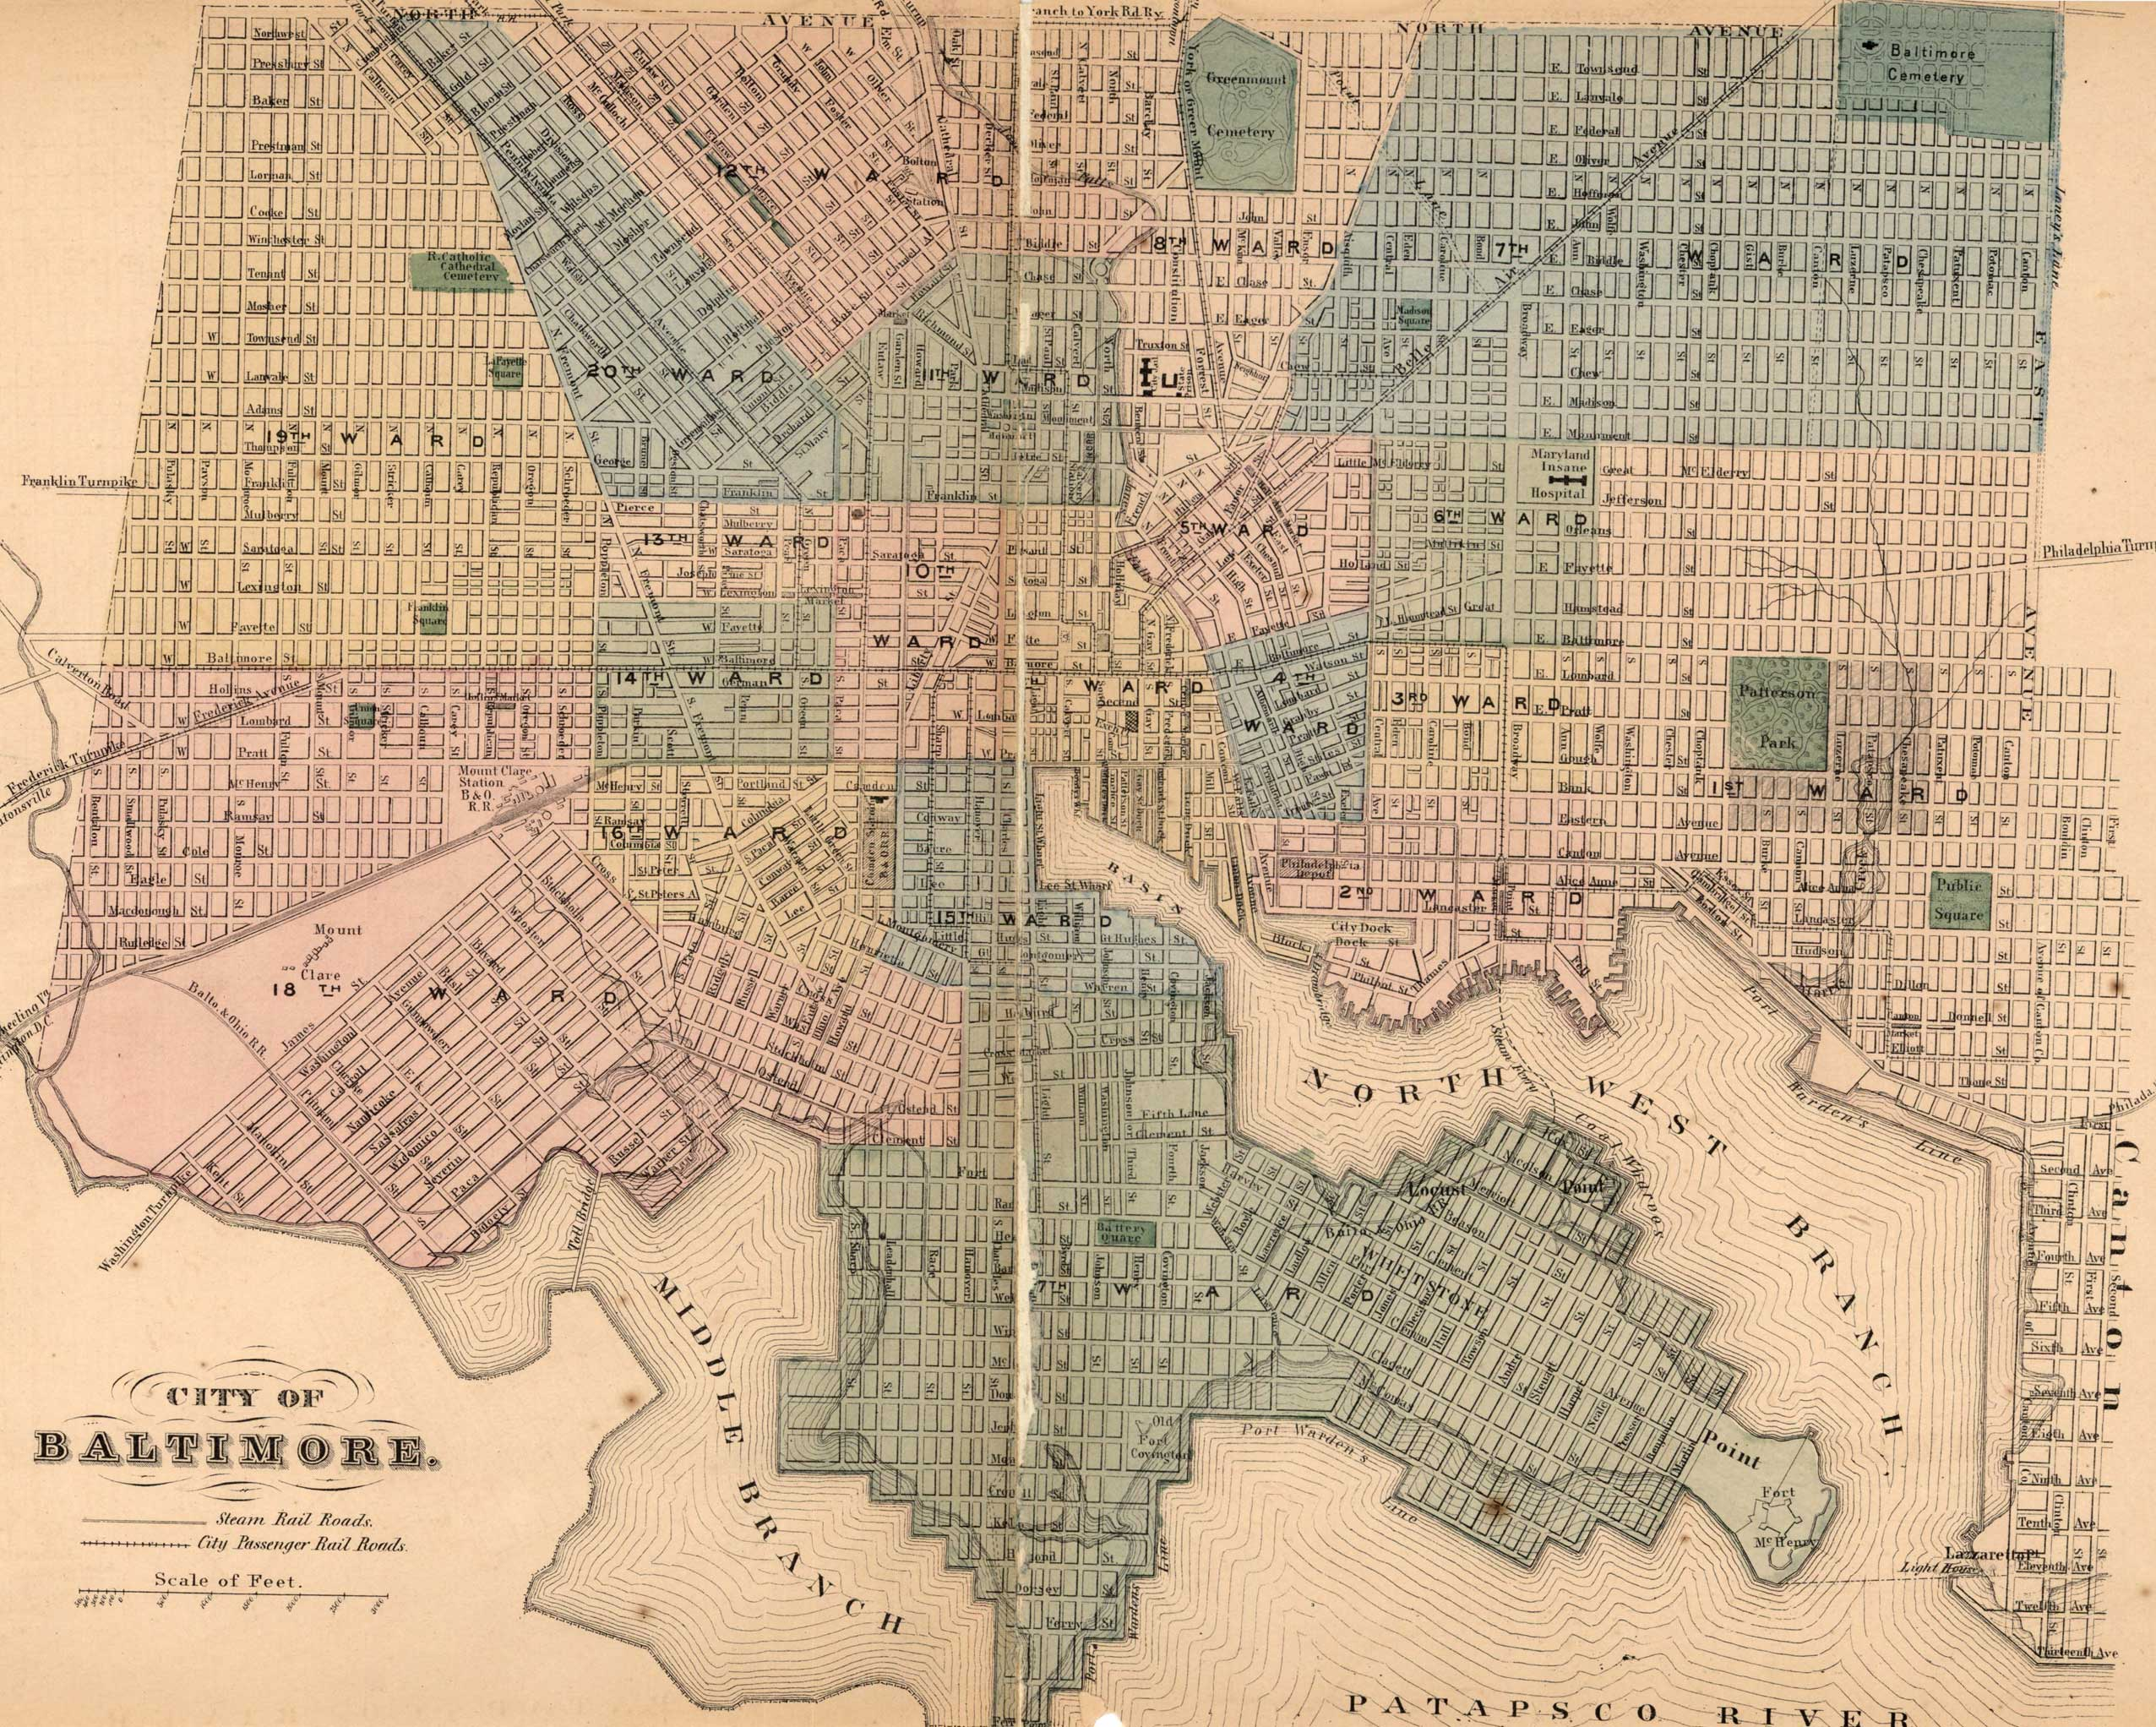 Baltimore City. Simon J. Martenet, Martenet's Atlas of Maryland, 1865, Huntingfield Collection, MSA SC 1399-1-75